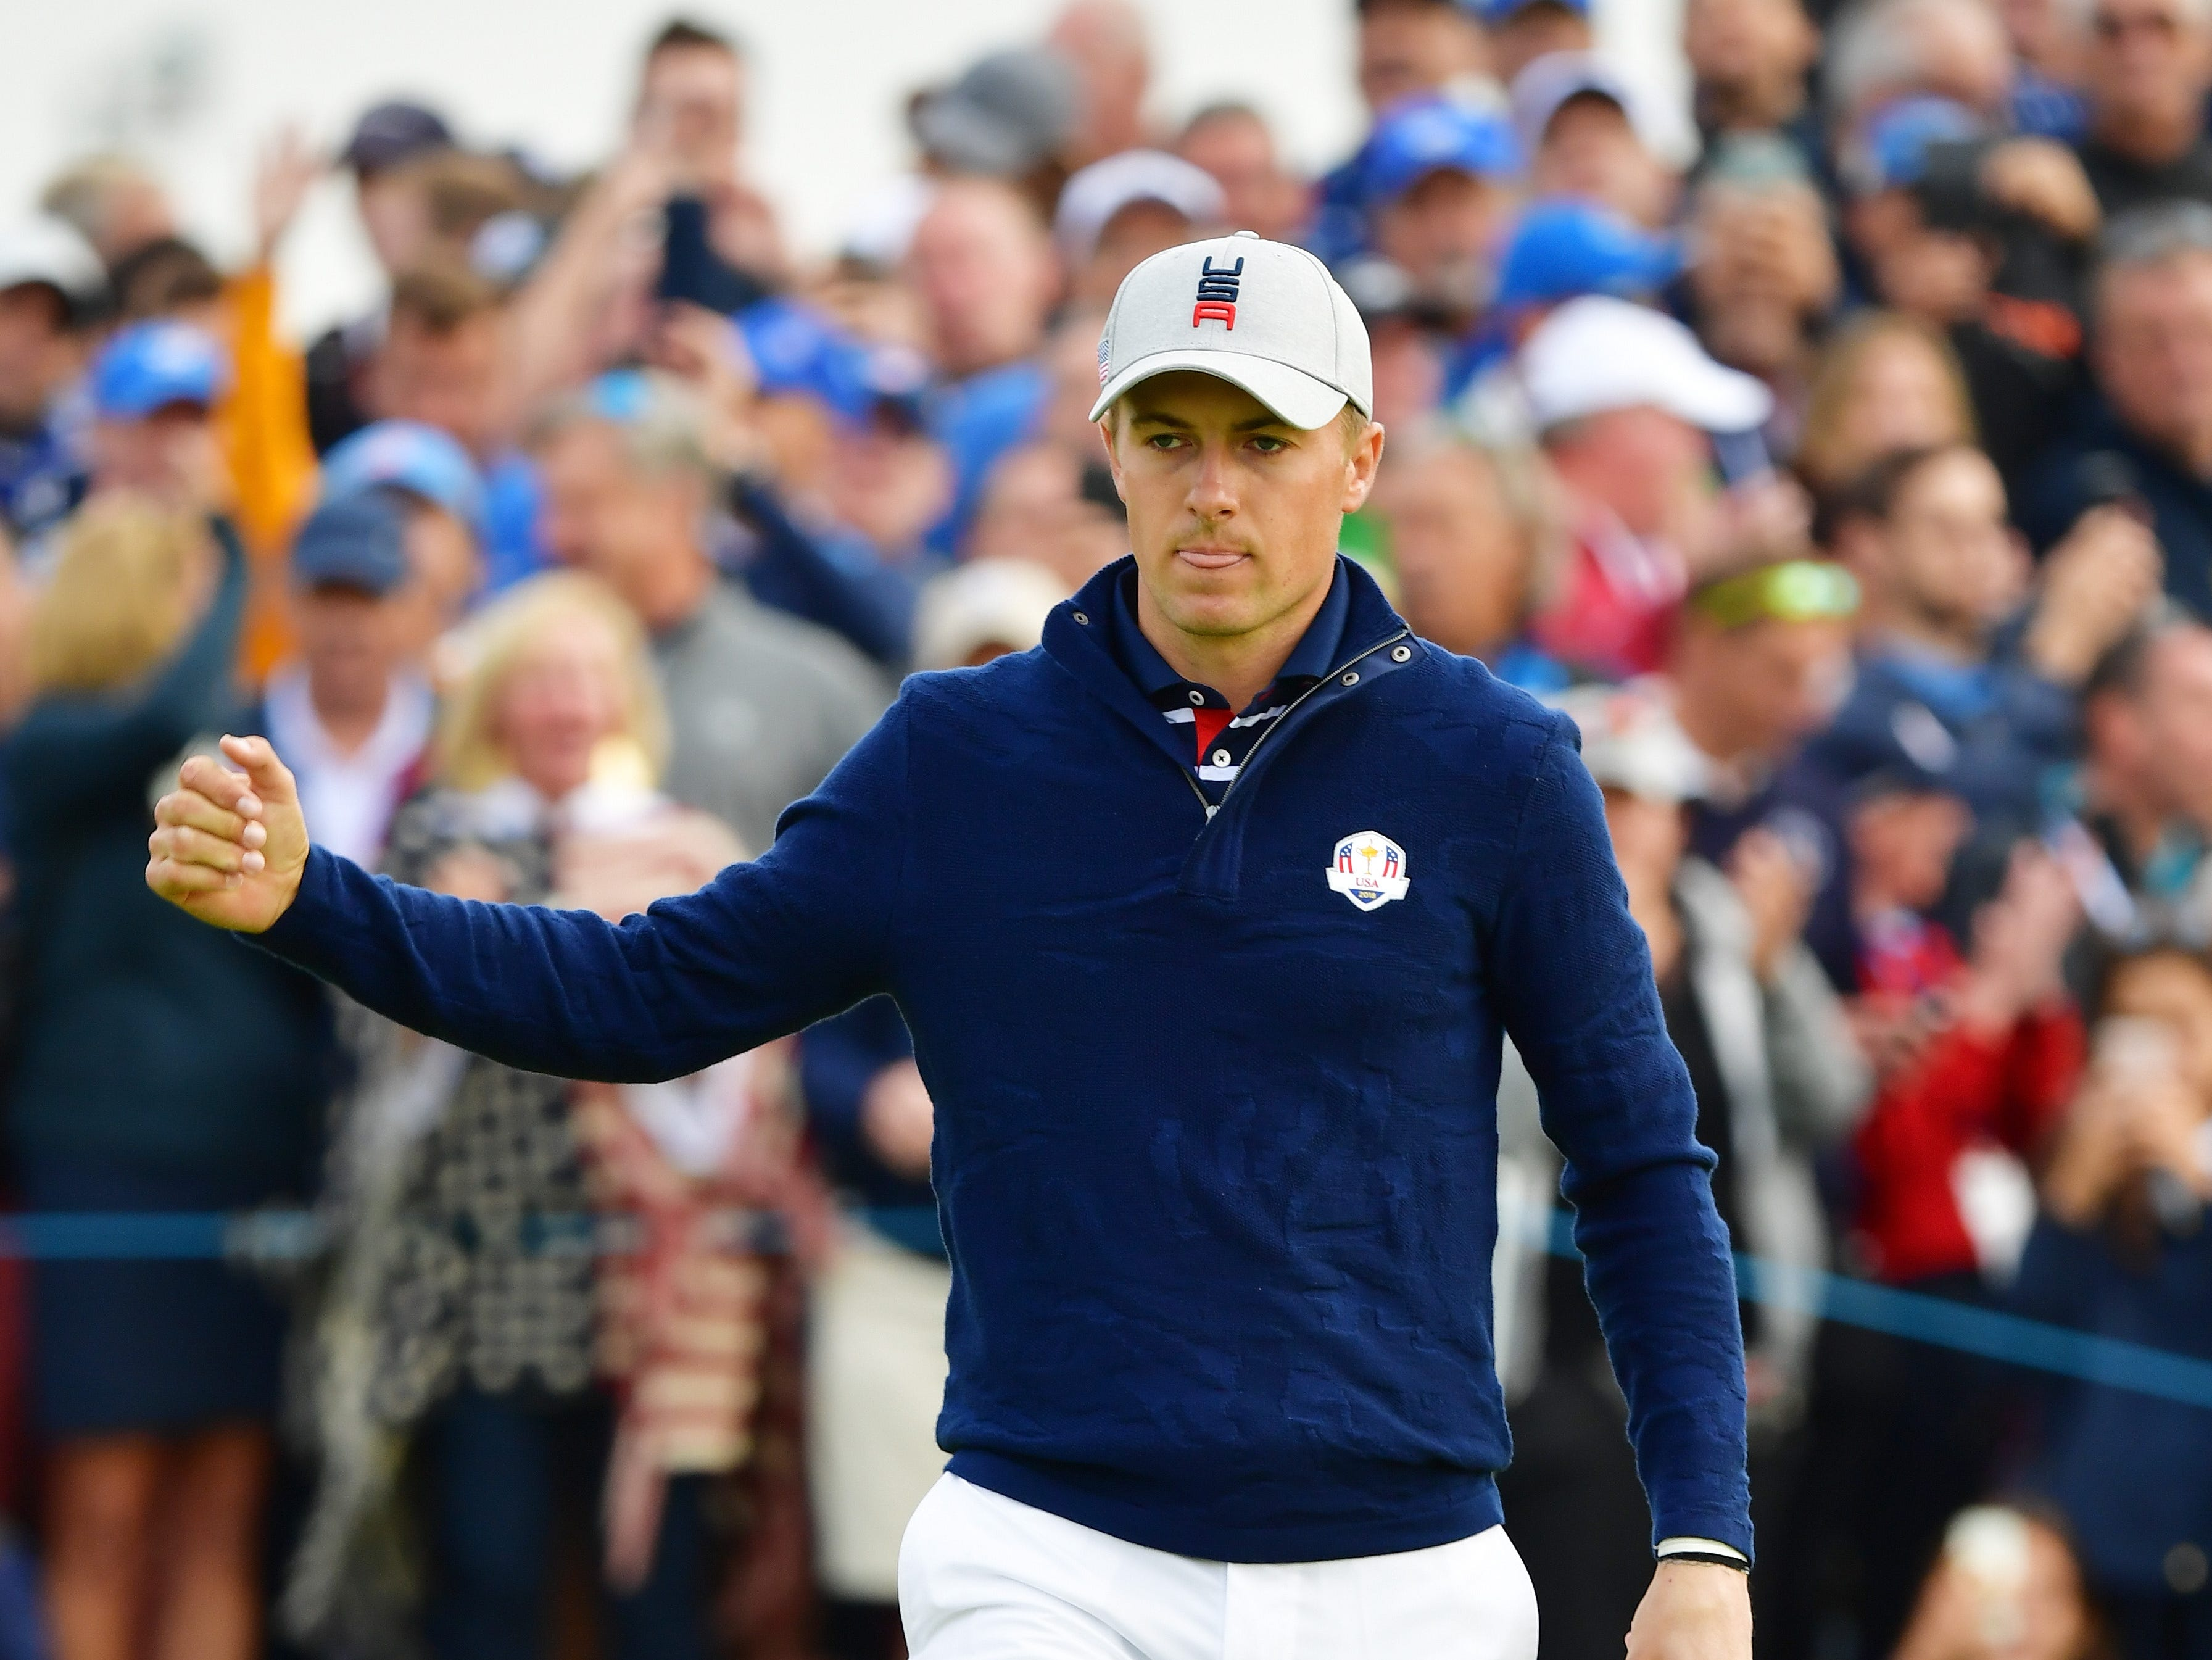 Jordan Spieth celebrates during the morning fourball matches of the 2018 Ryder Cup at Le Golf National. He birdied five of the first seven holes.